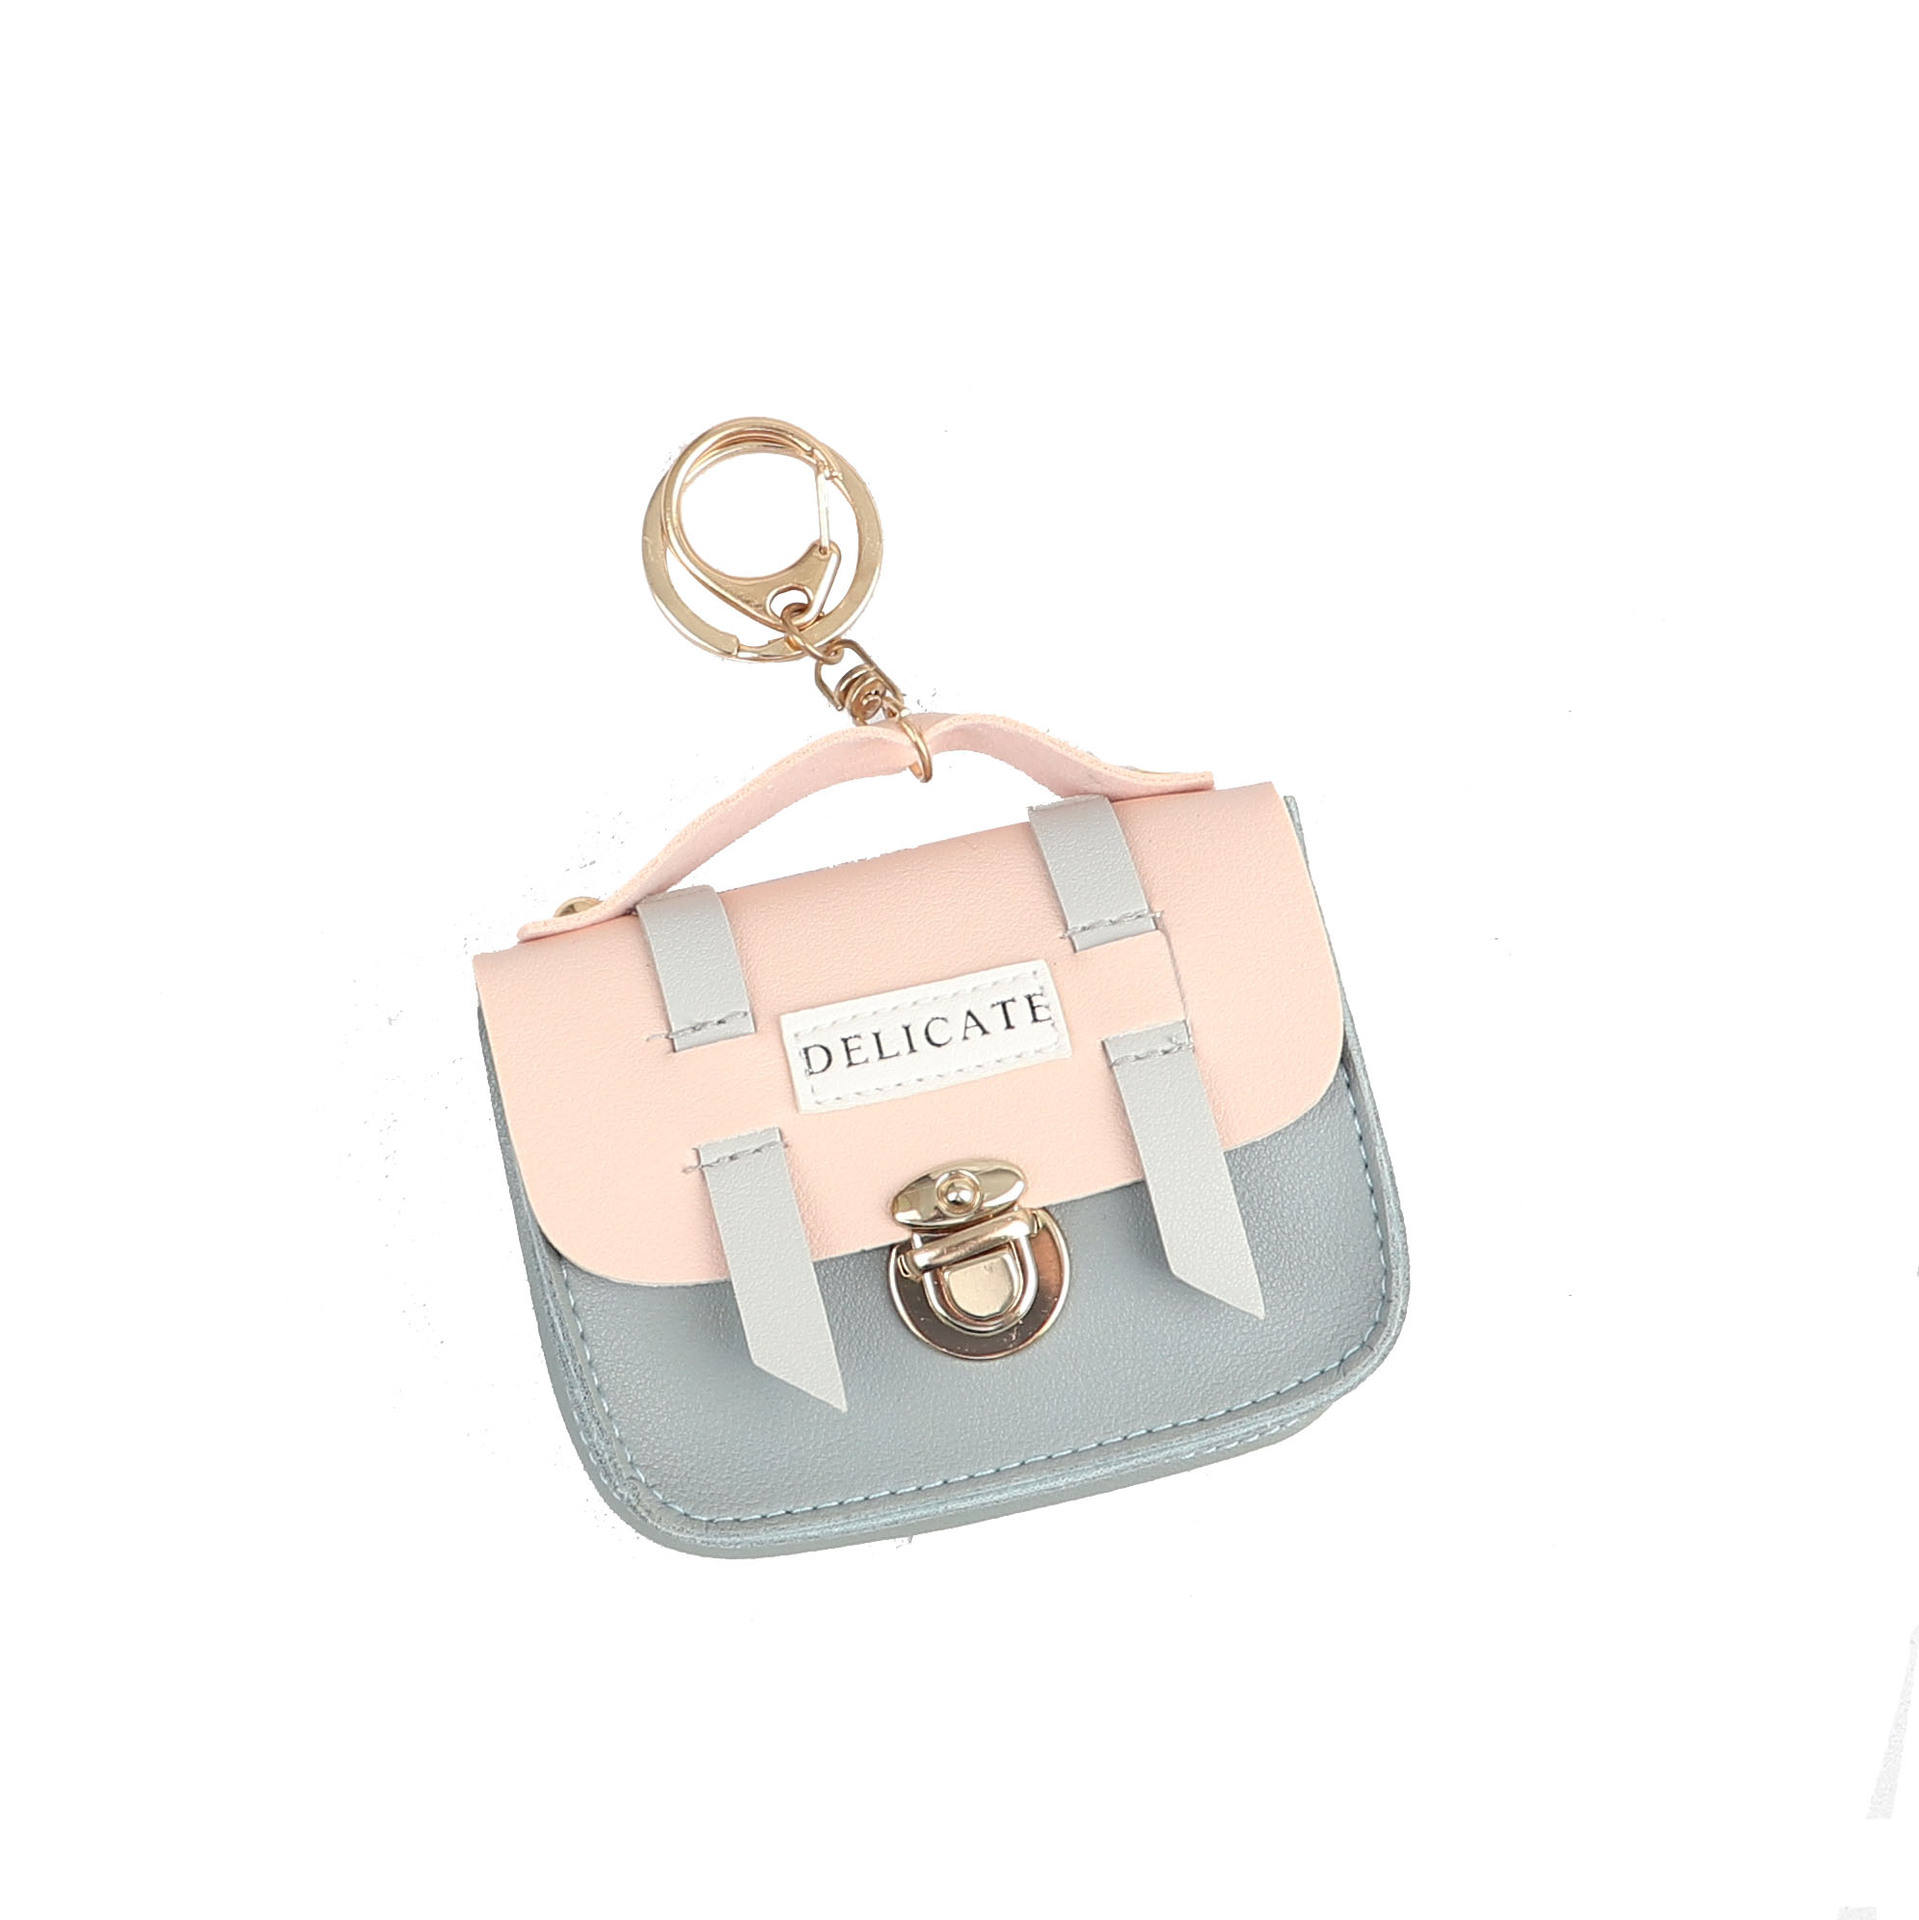 Mini Zipper bags Cute Baby Kid Girl Princess PU Handbag Messenger Satchel Bags Cute Mini Coin Purses